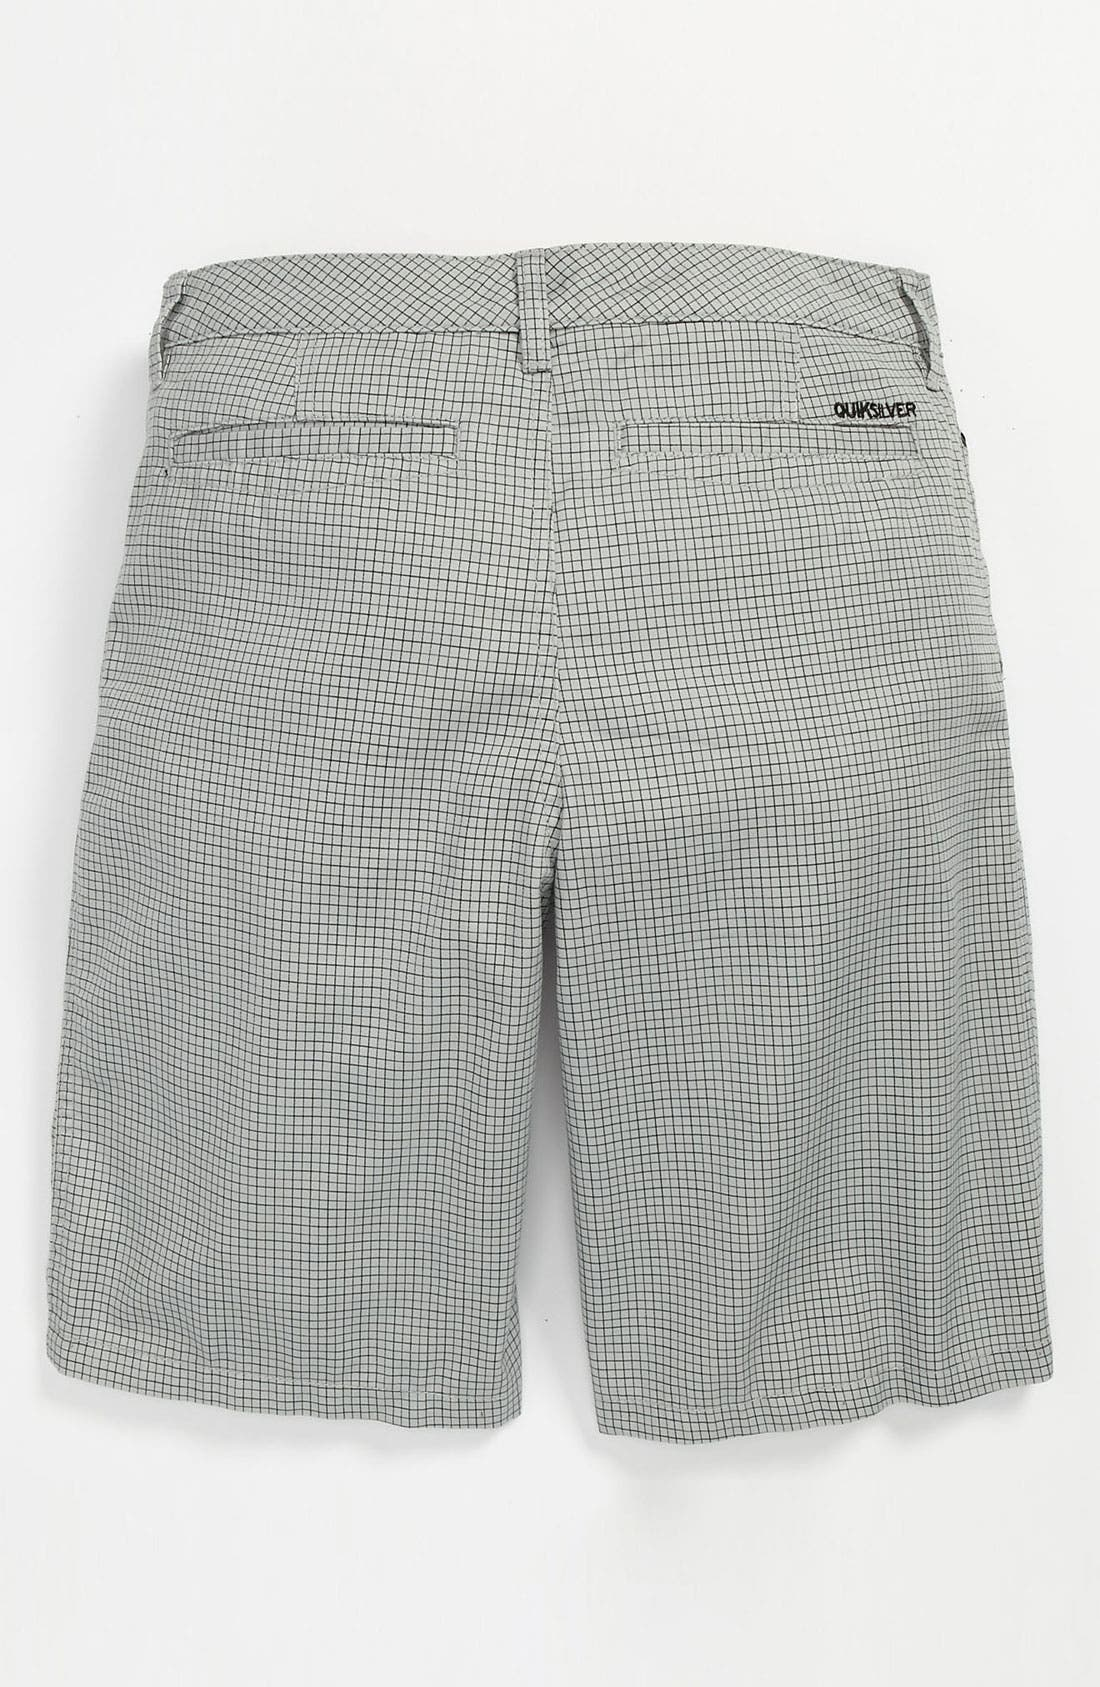 Alternate Image 2  - Quiksilver 'All In' Shorts (Big Boys)